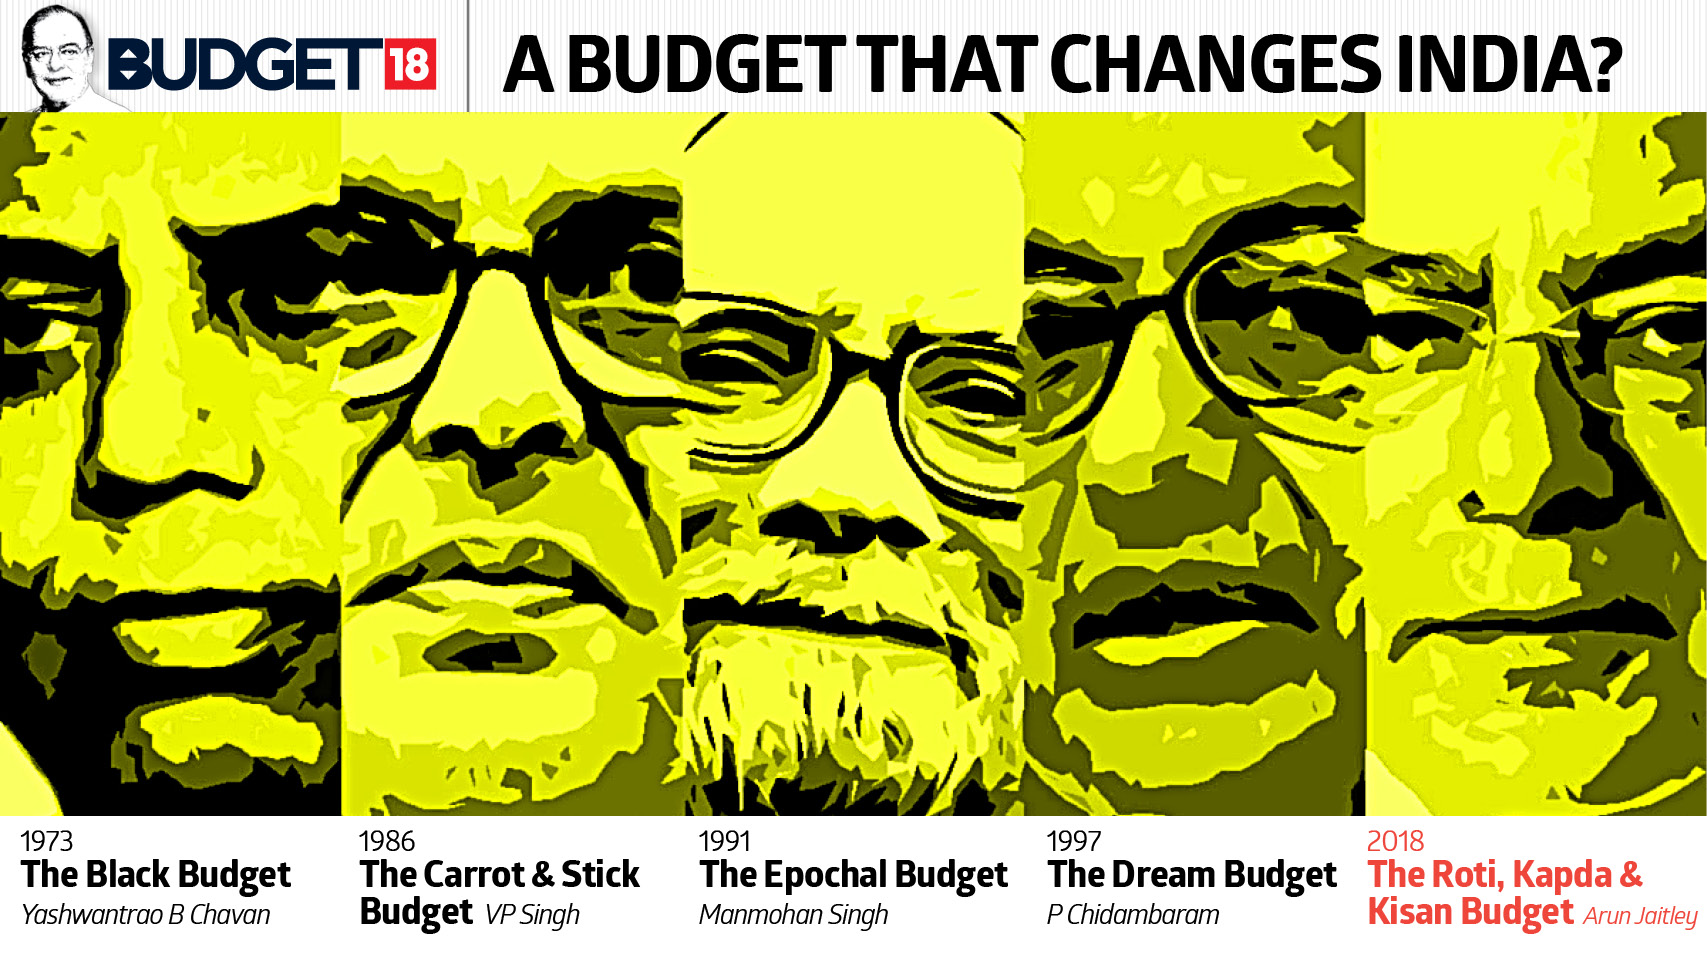 Budget the changed India